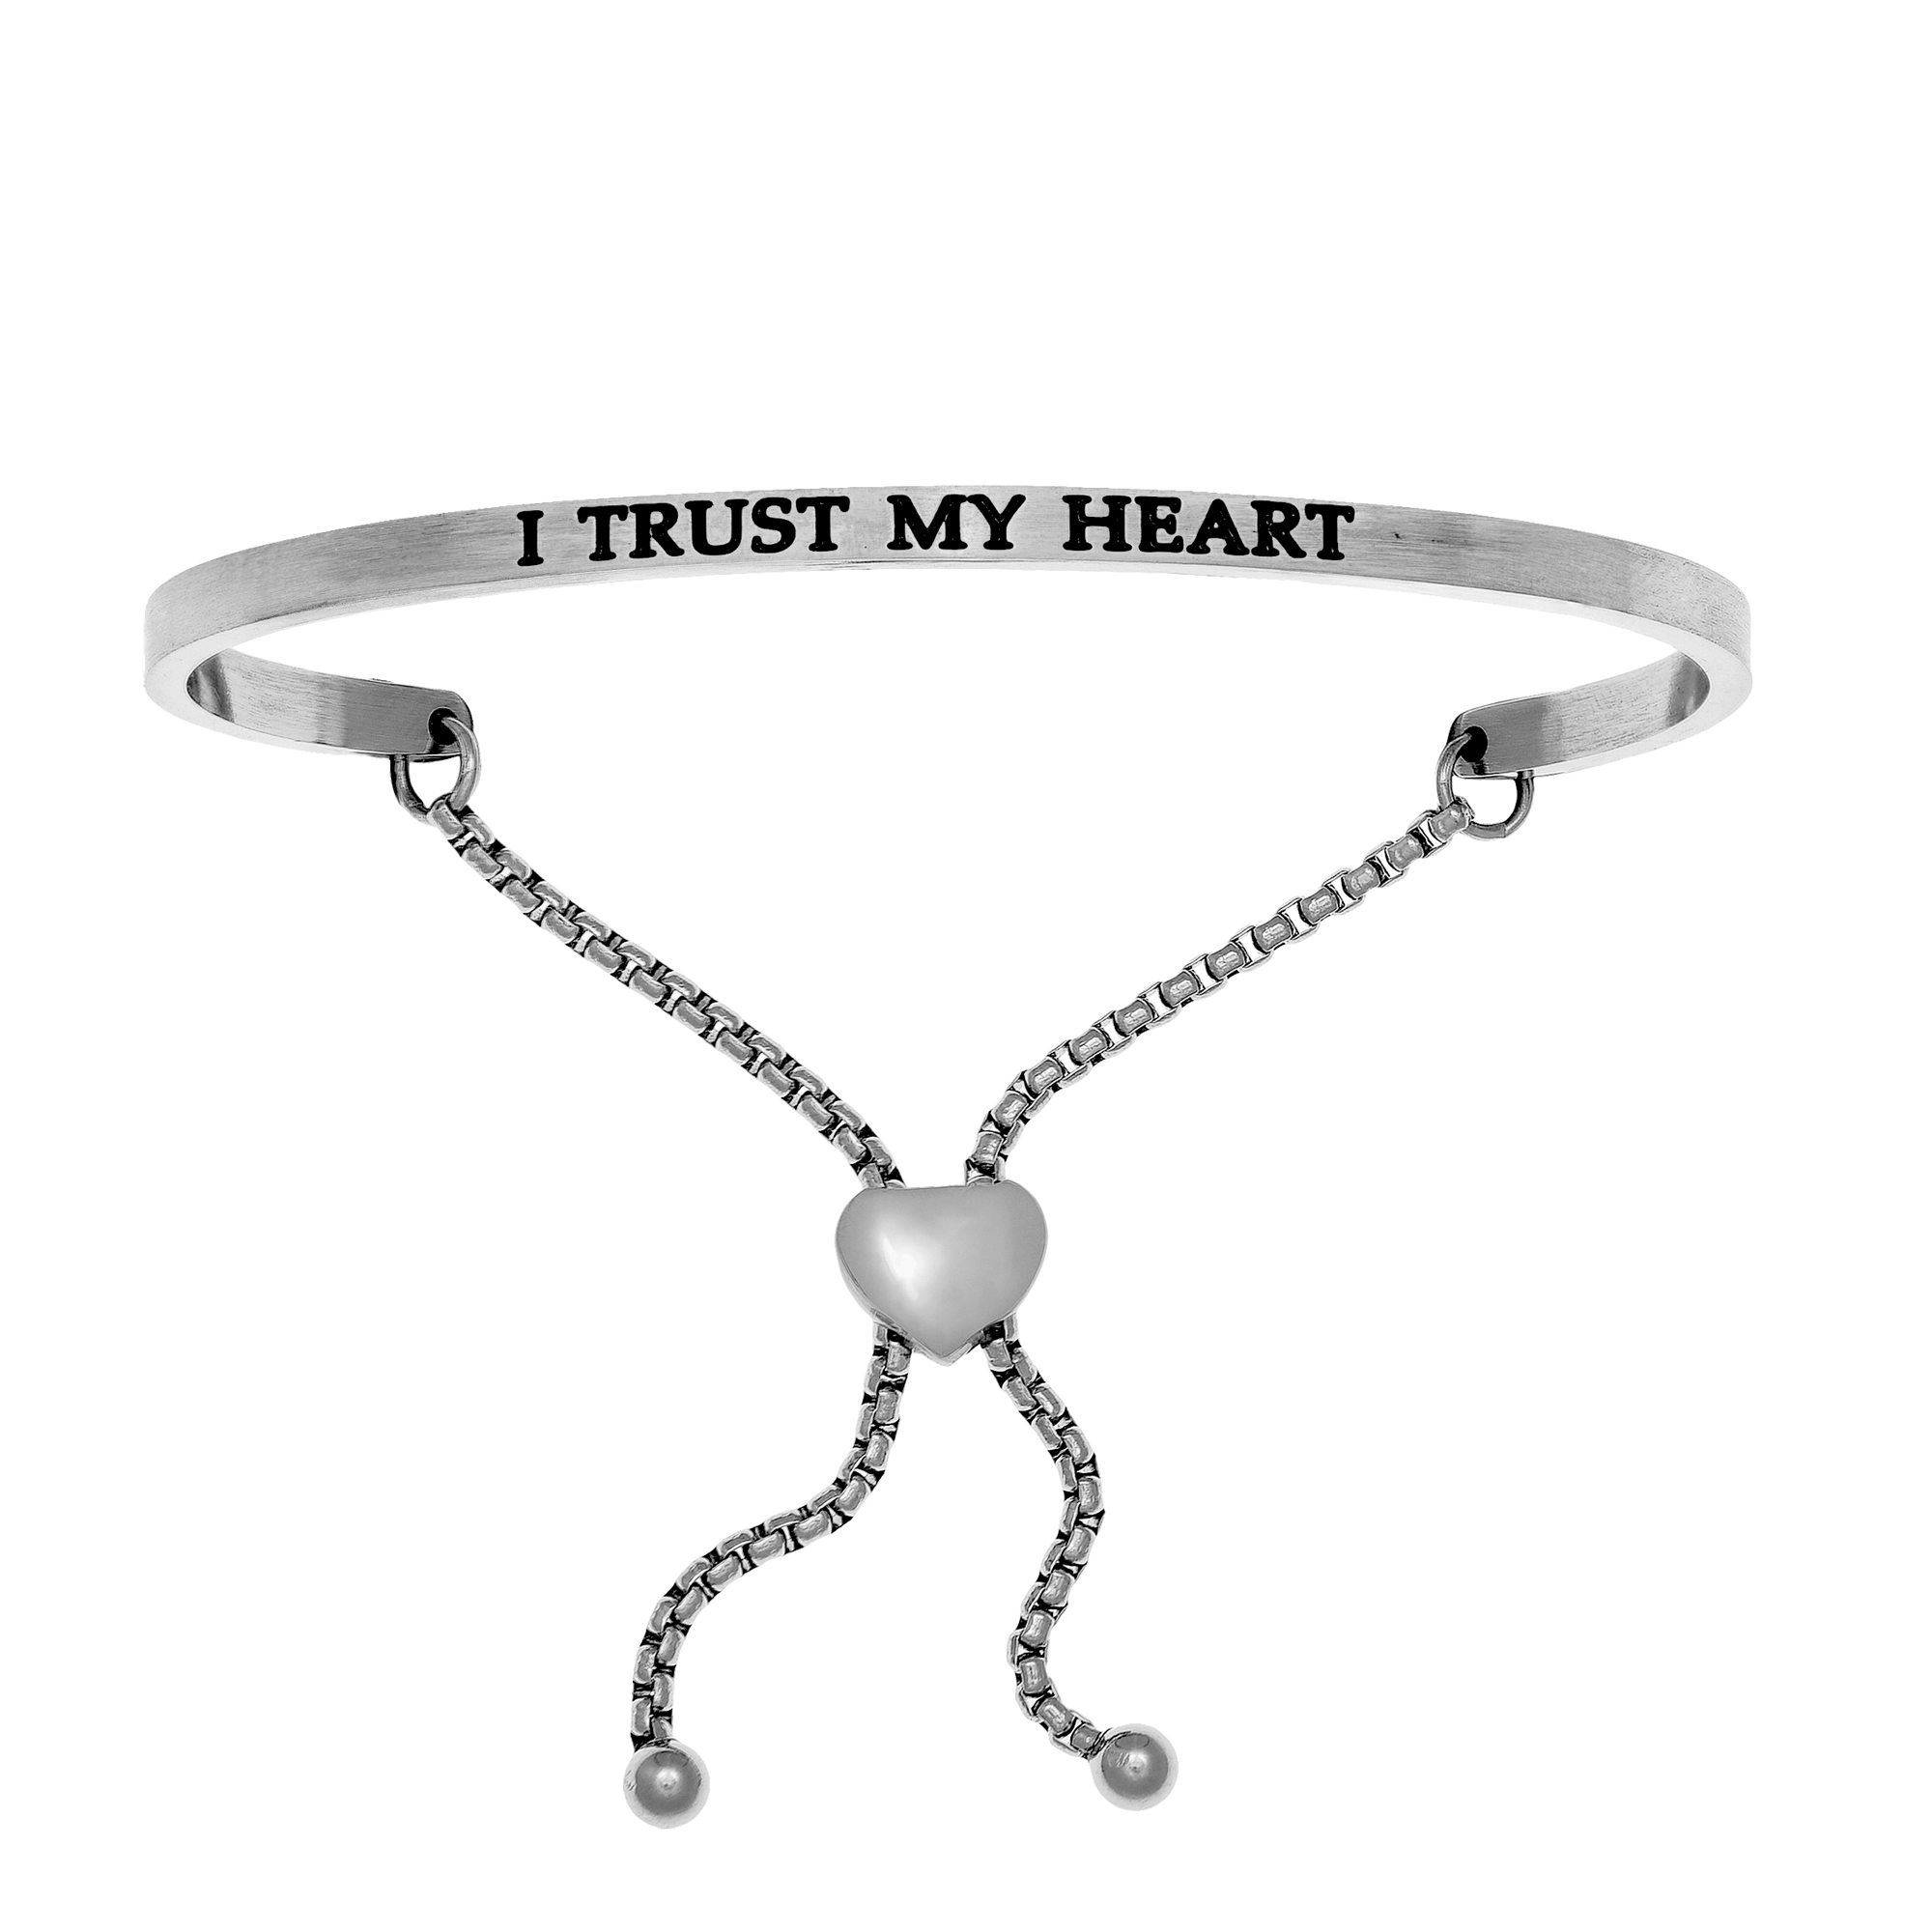 Intuitions Stainless Steel I TRUST MY HEART Diamond Accent Adjustable Bracelet Each of these bracelets carries a personal message of inspiration, spirituality or just plain fun. Meant to be worn alone or stacked together for a smart, contemporary look, they're a great self-purchase or as a gift for family or friends. Intuitions are made of stainless steel and come in two styles standard cuff or friendship and fit practically any wrist. Intuitions Jewelry makes the difference in your daily life by designing and creating bracelets and bangles with motivational quotes to inspire you and your loved ones. Giving back $.25 of each bracelet to BABY2BABY